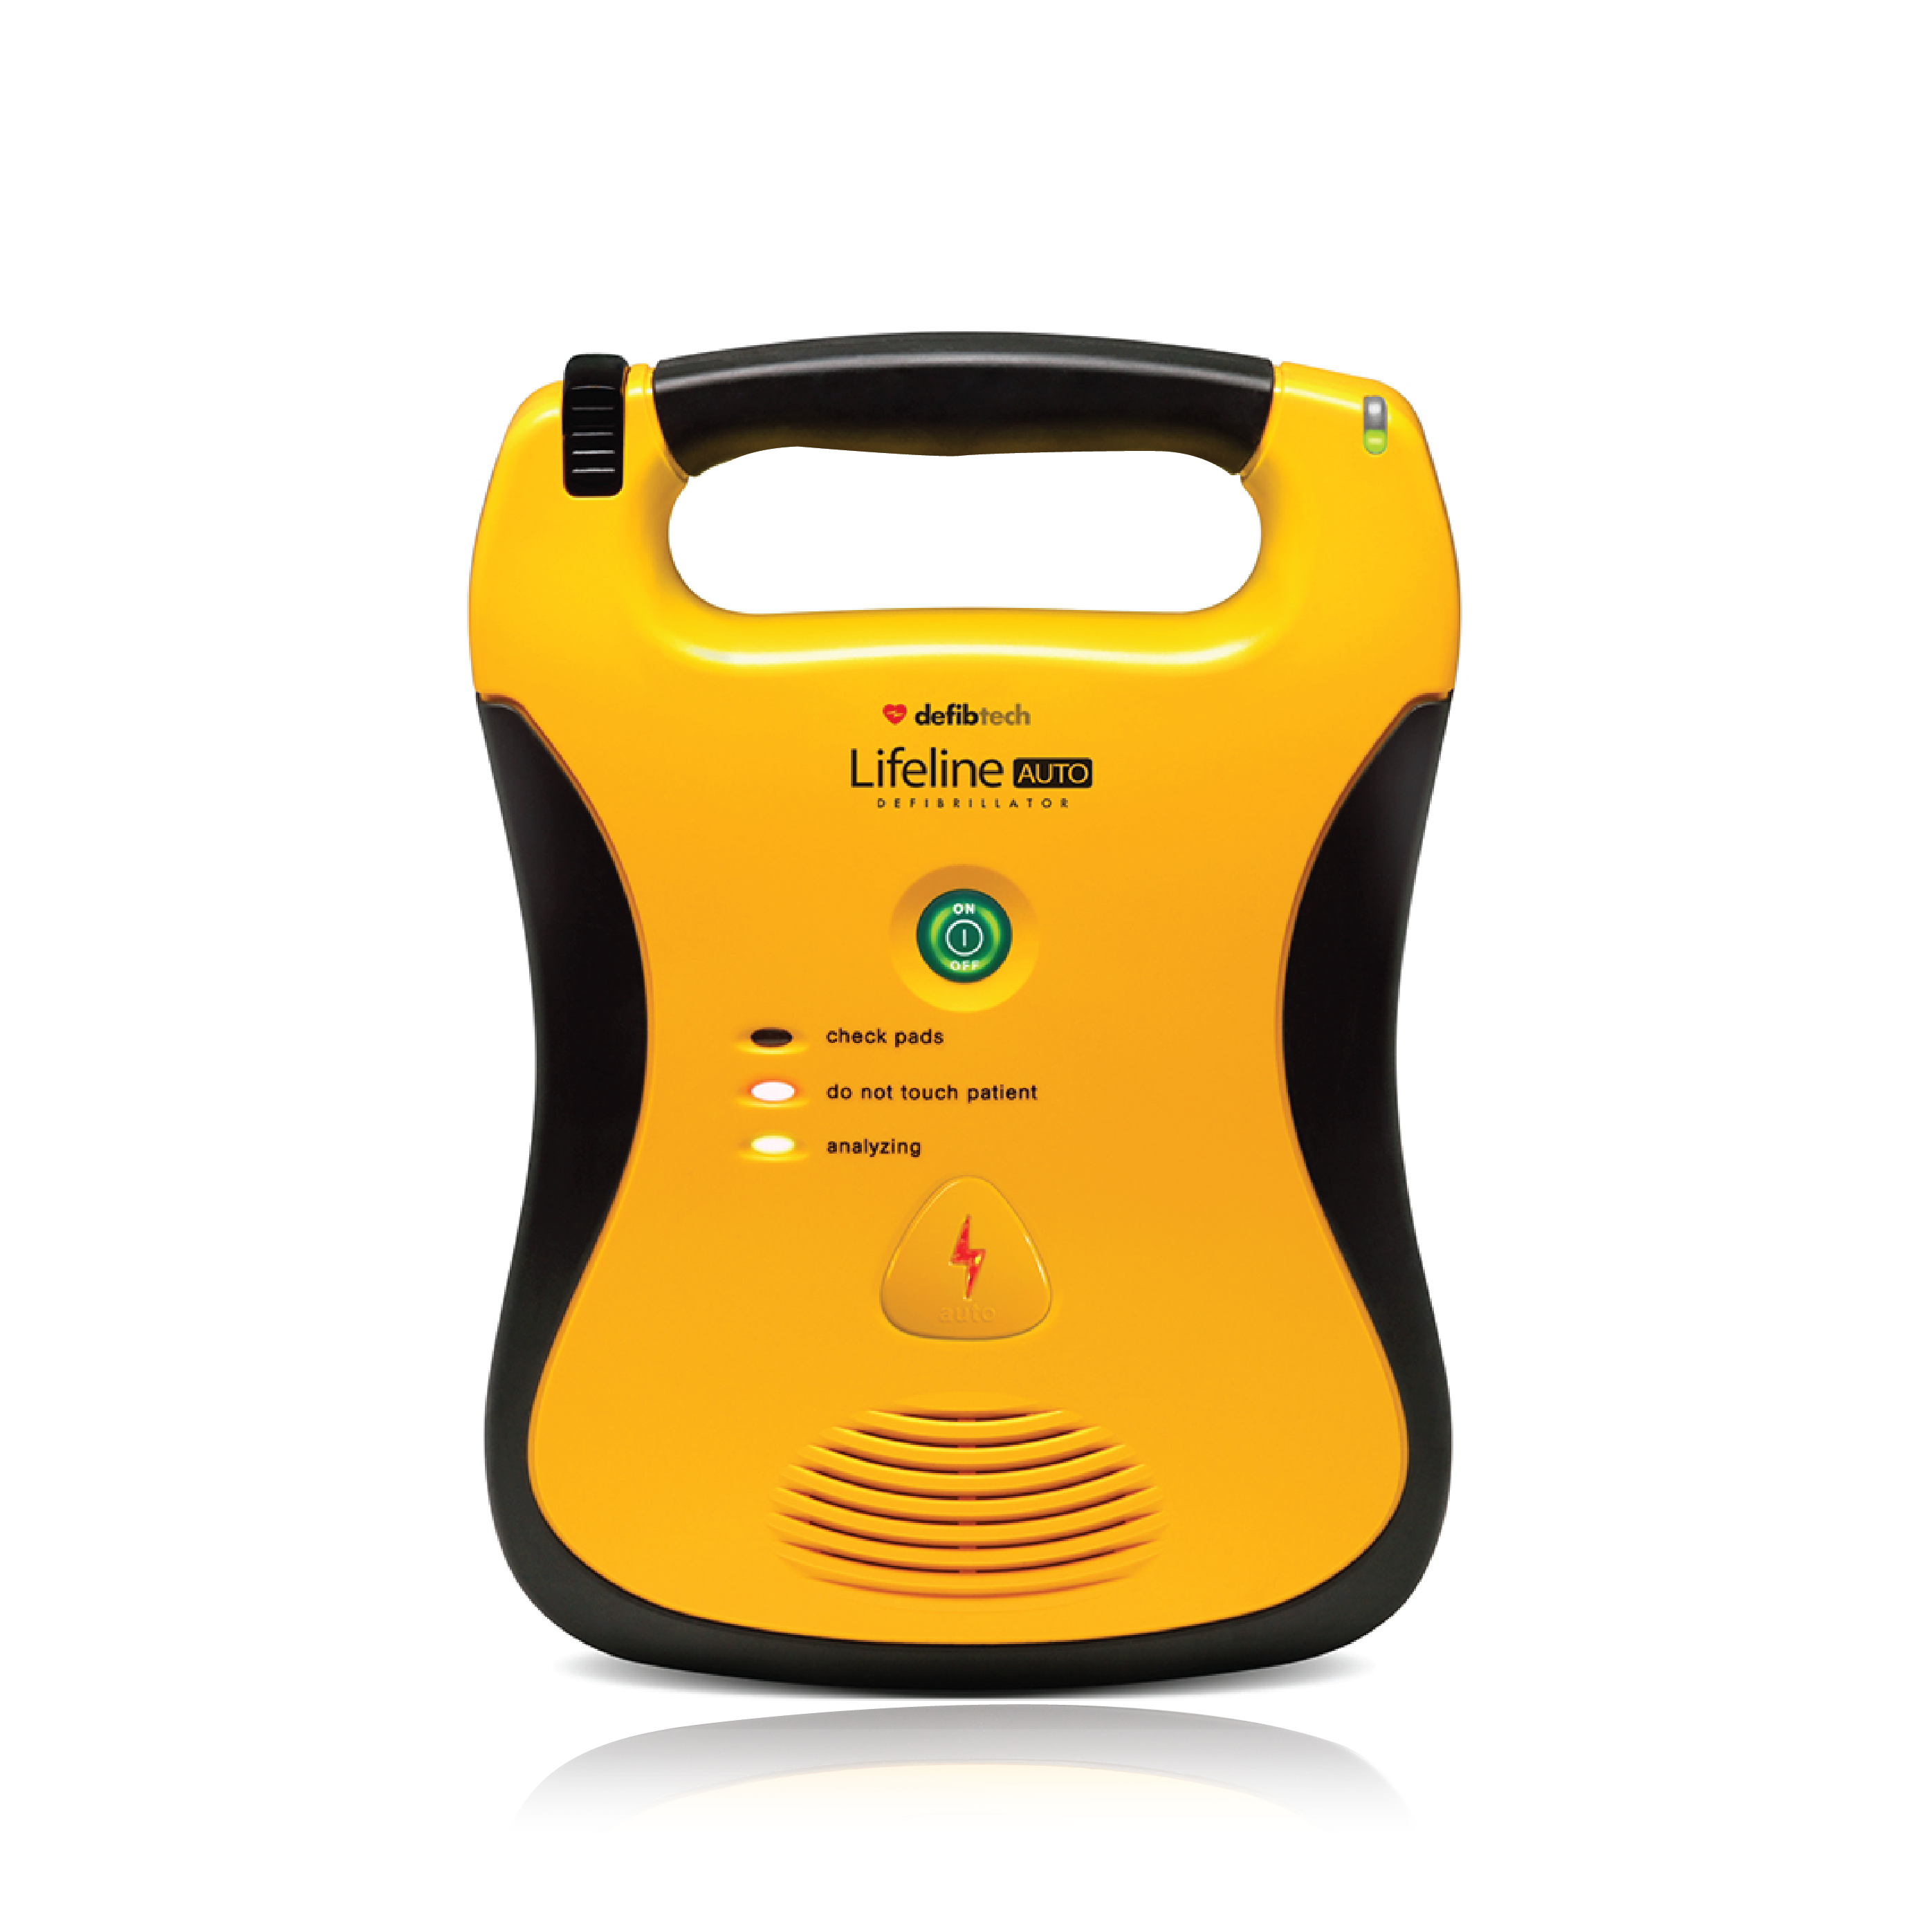 Lifeline Fully Automatic Defibrillator with Standard Capacity